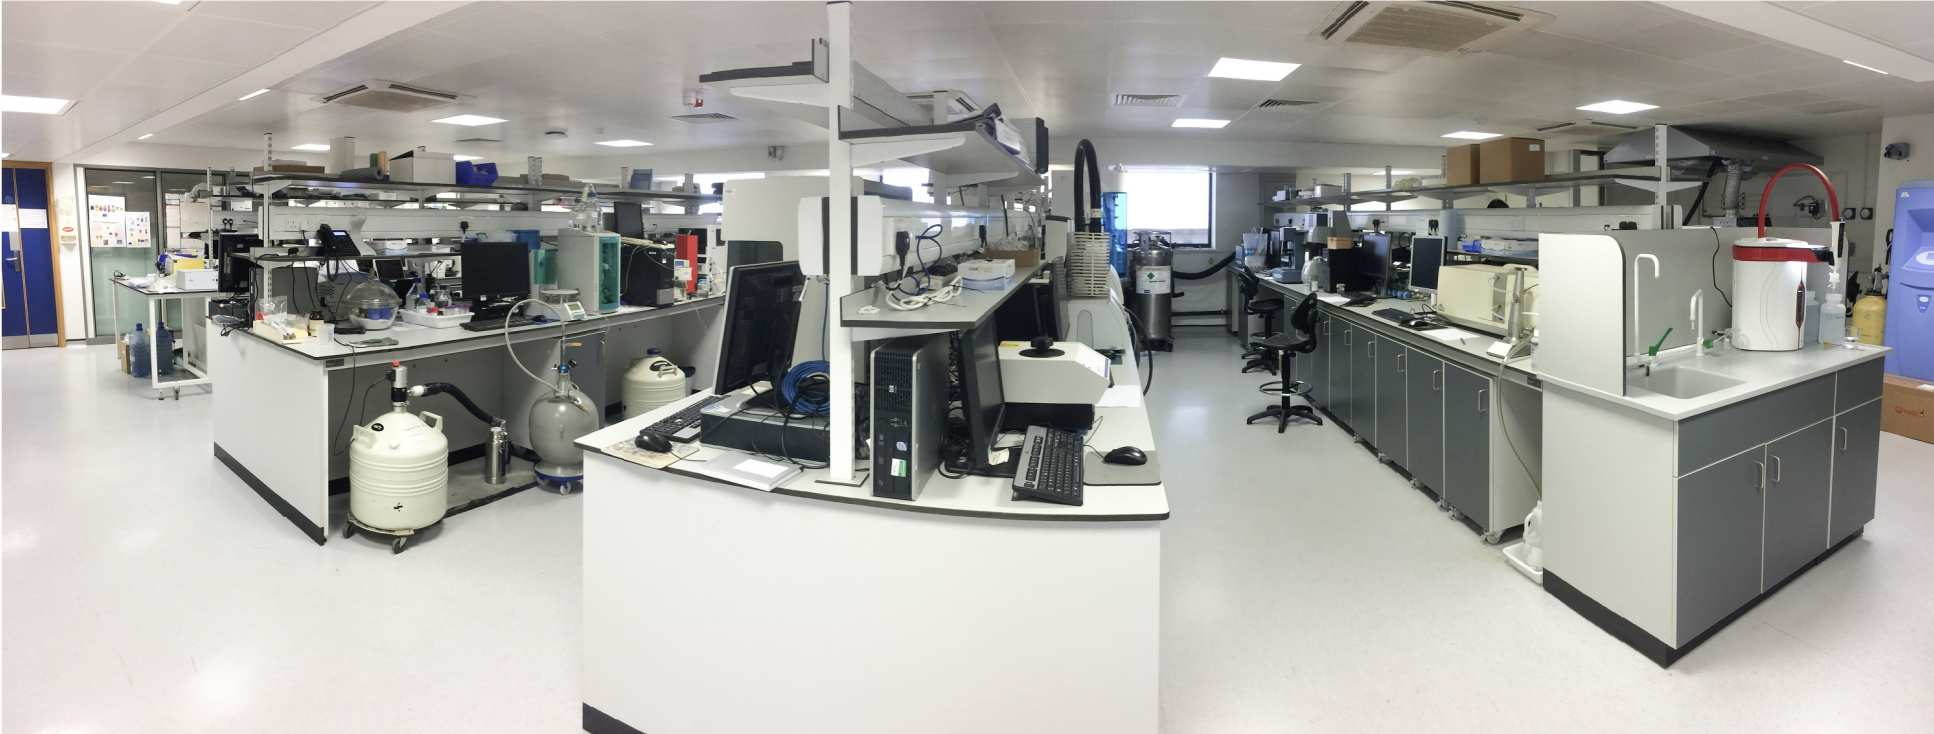 analytical services lab